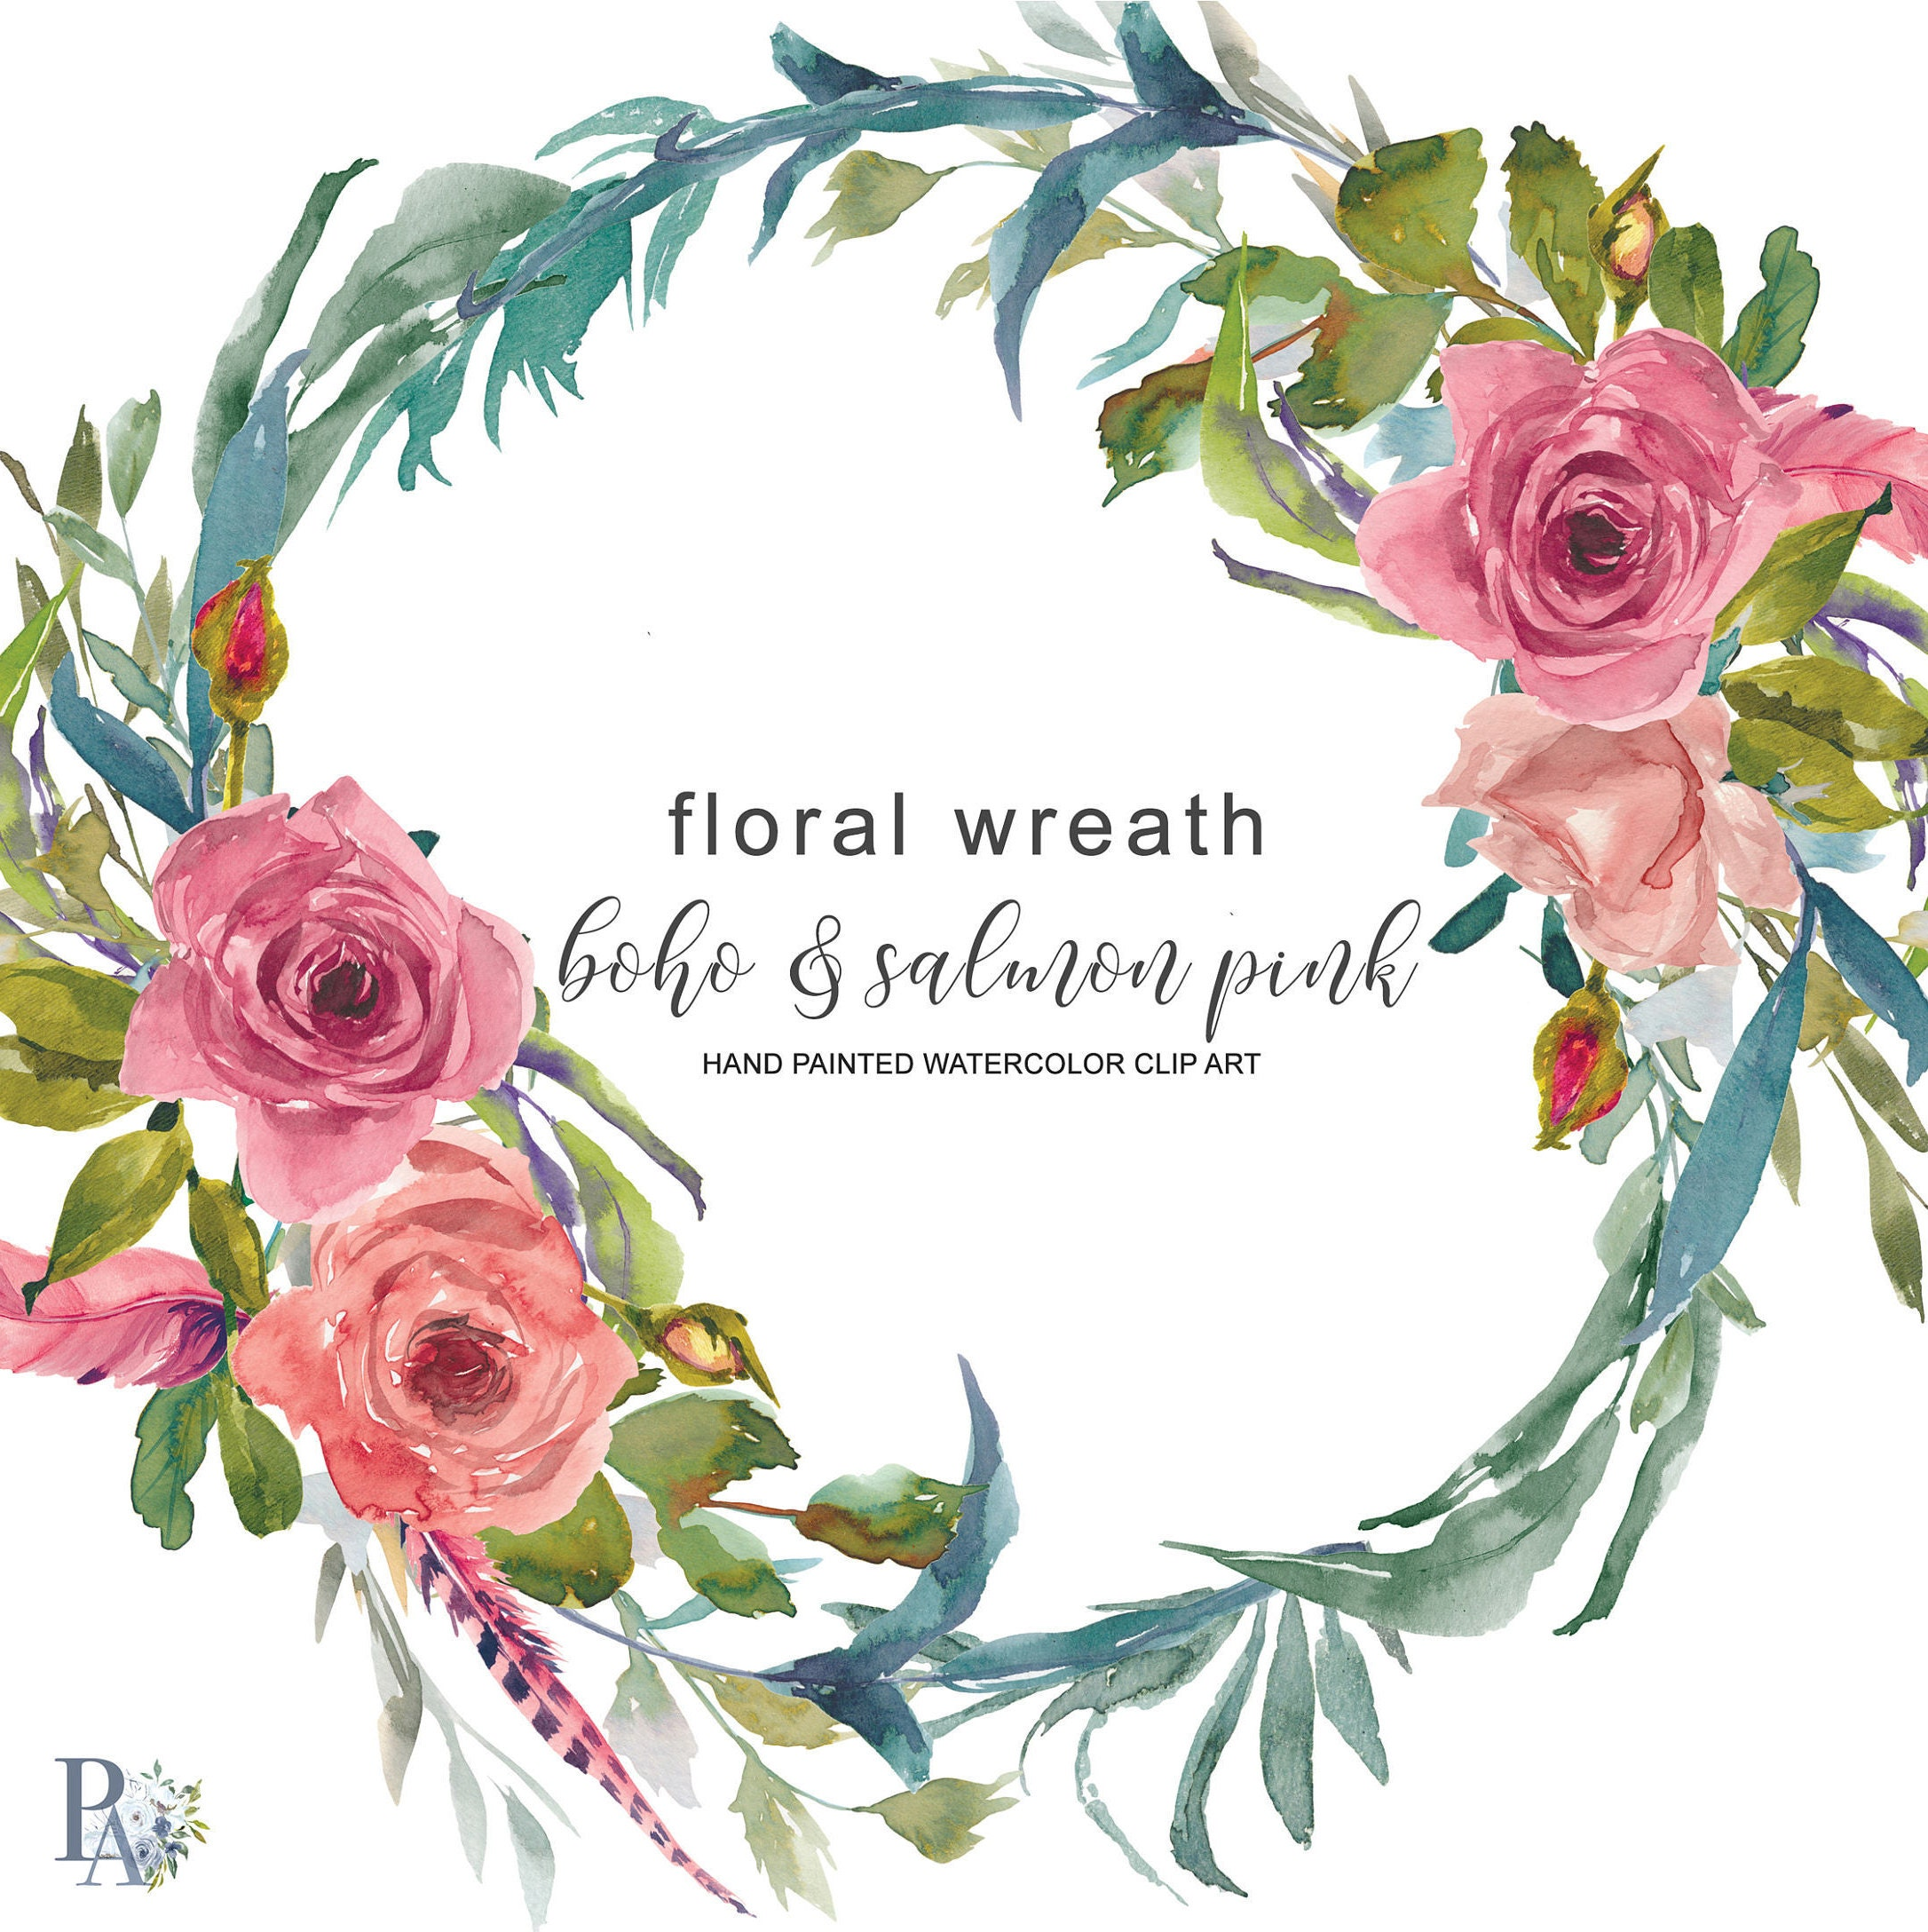 Watercolor Boho And Salmon Pink Flowers Wreath Floral Wreath Etsy